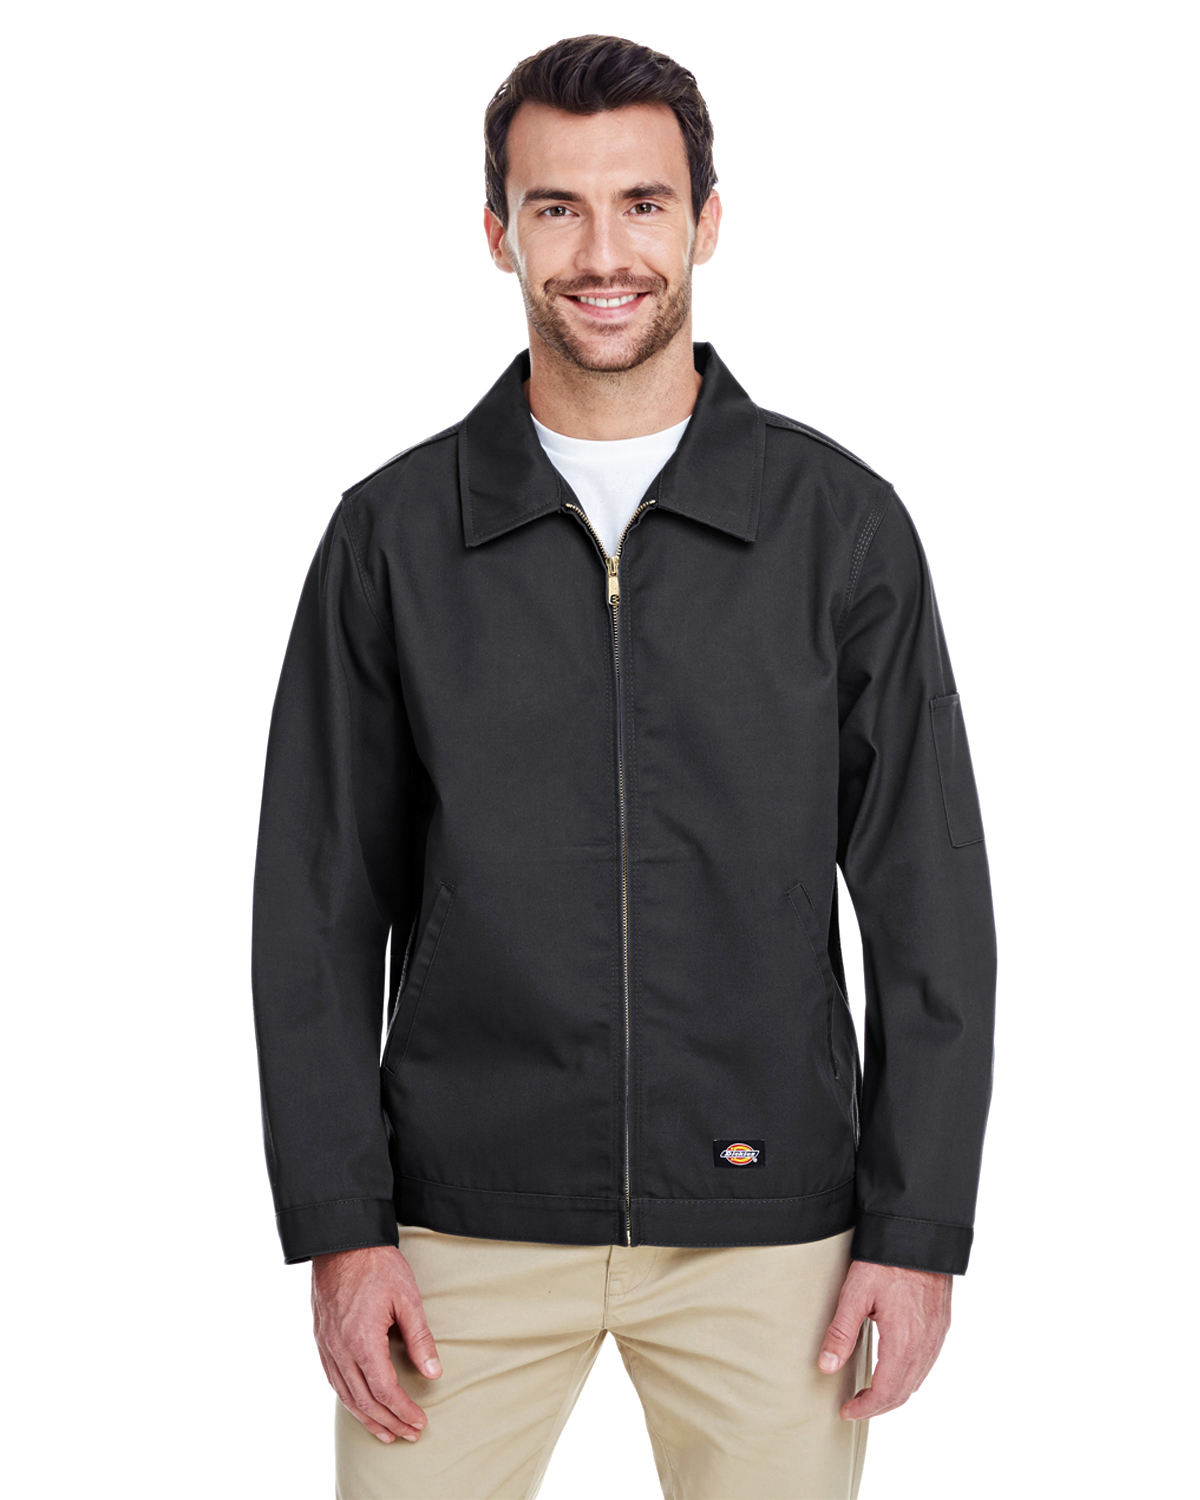 Dickies Occupational JT75 - Eisenhower Classic Unlined Jacket